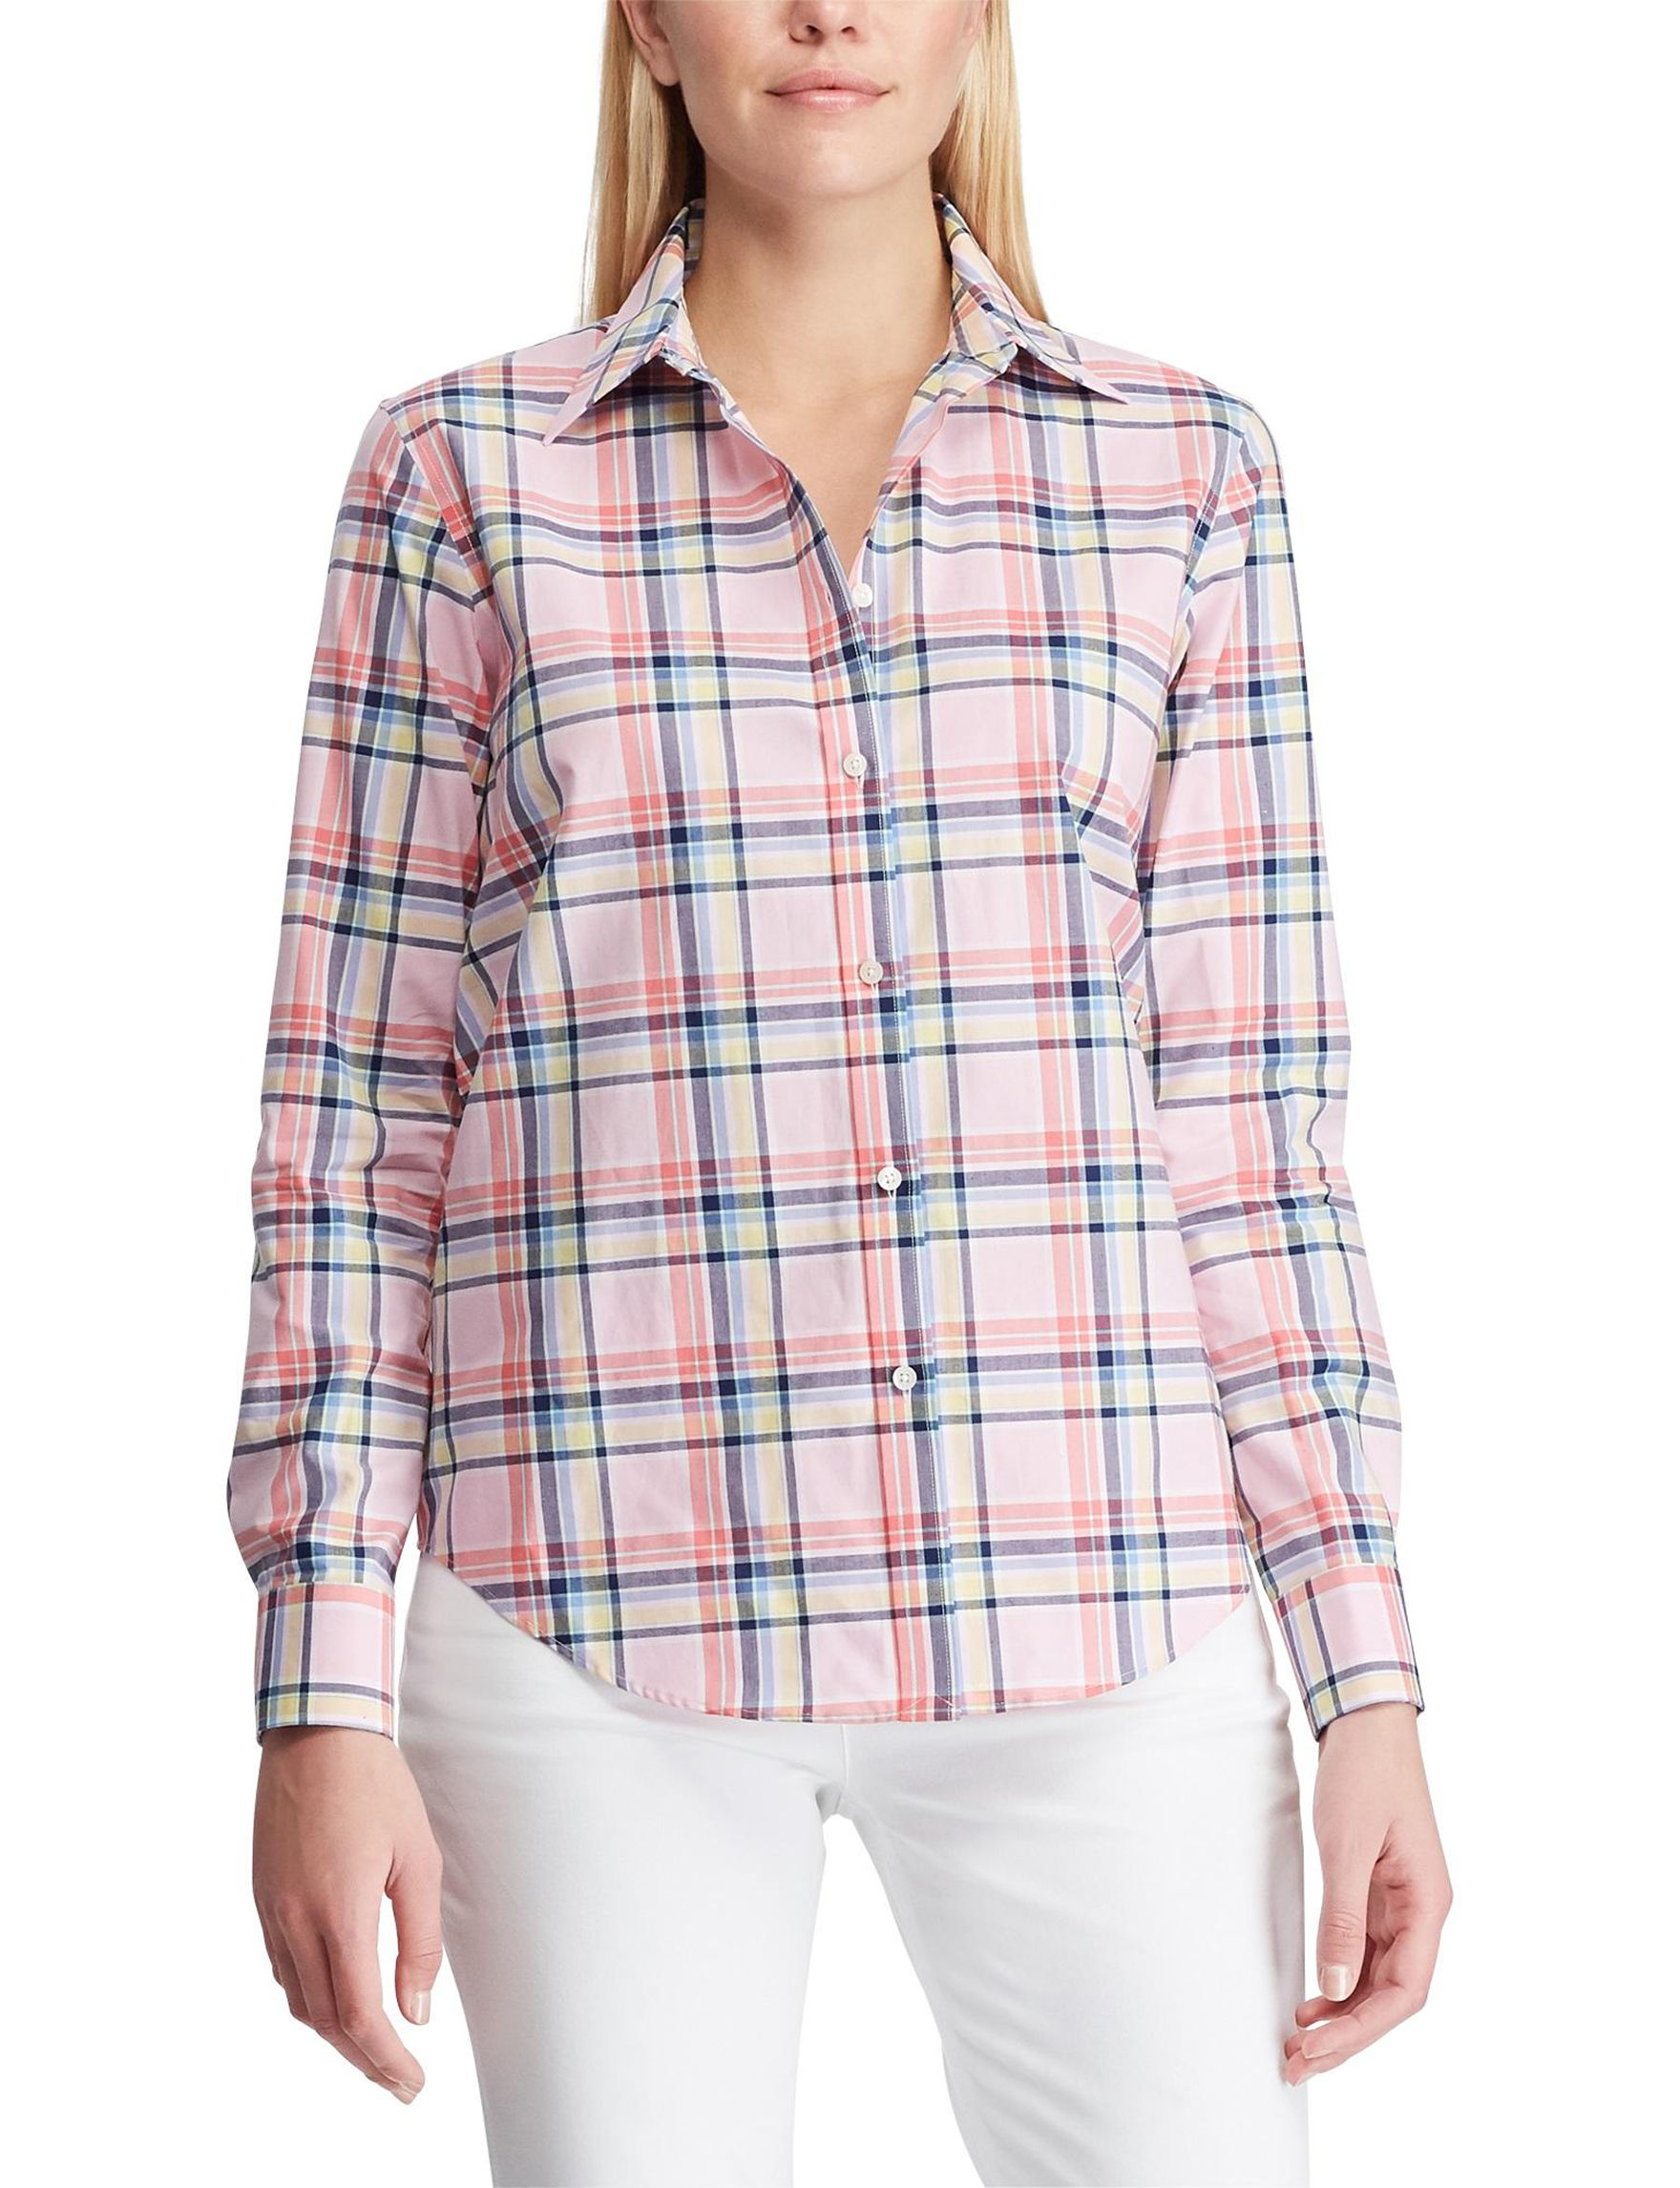 Chaps Pink Shirts & Blouses